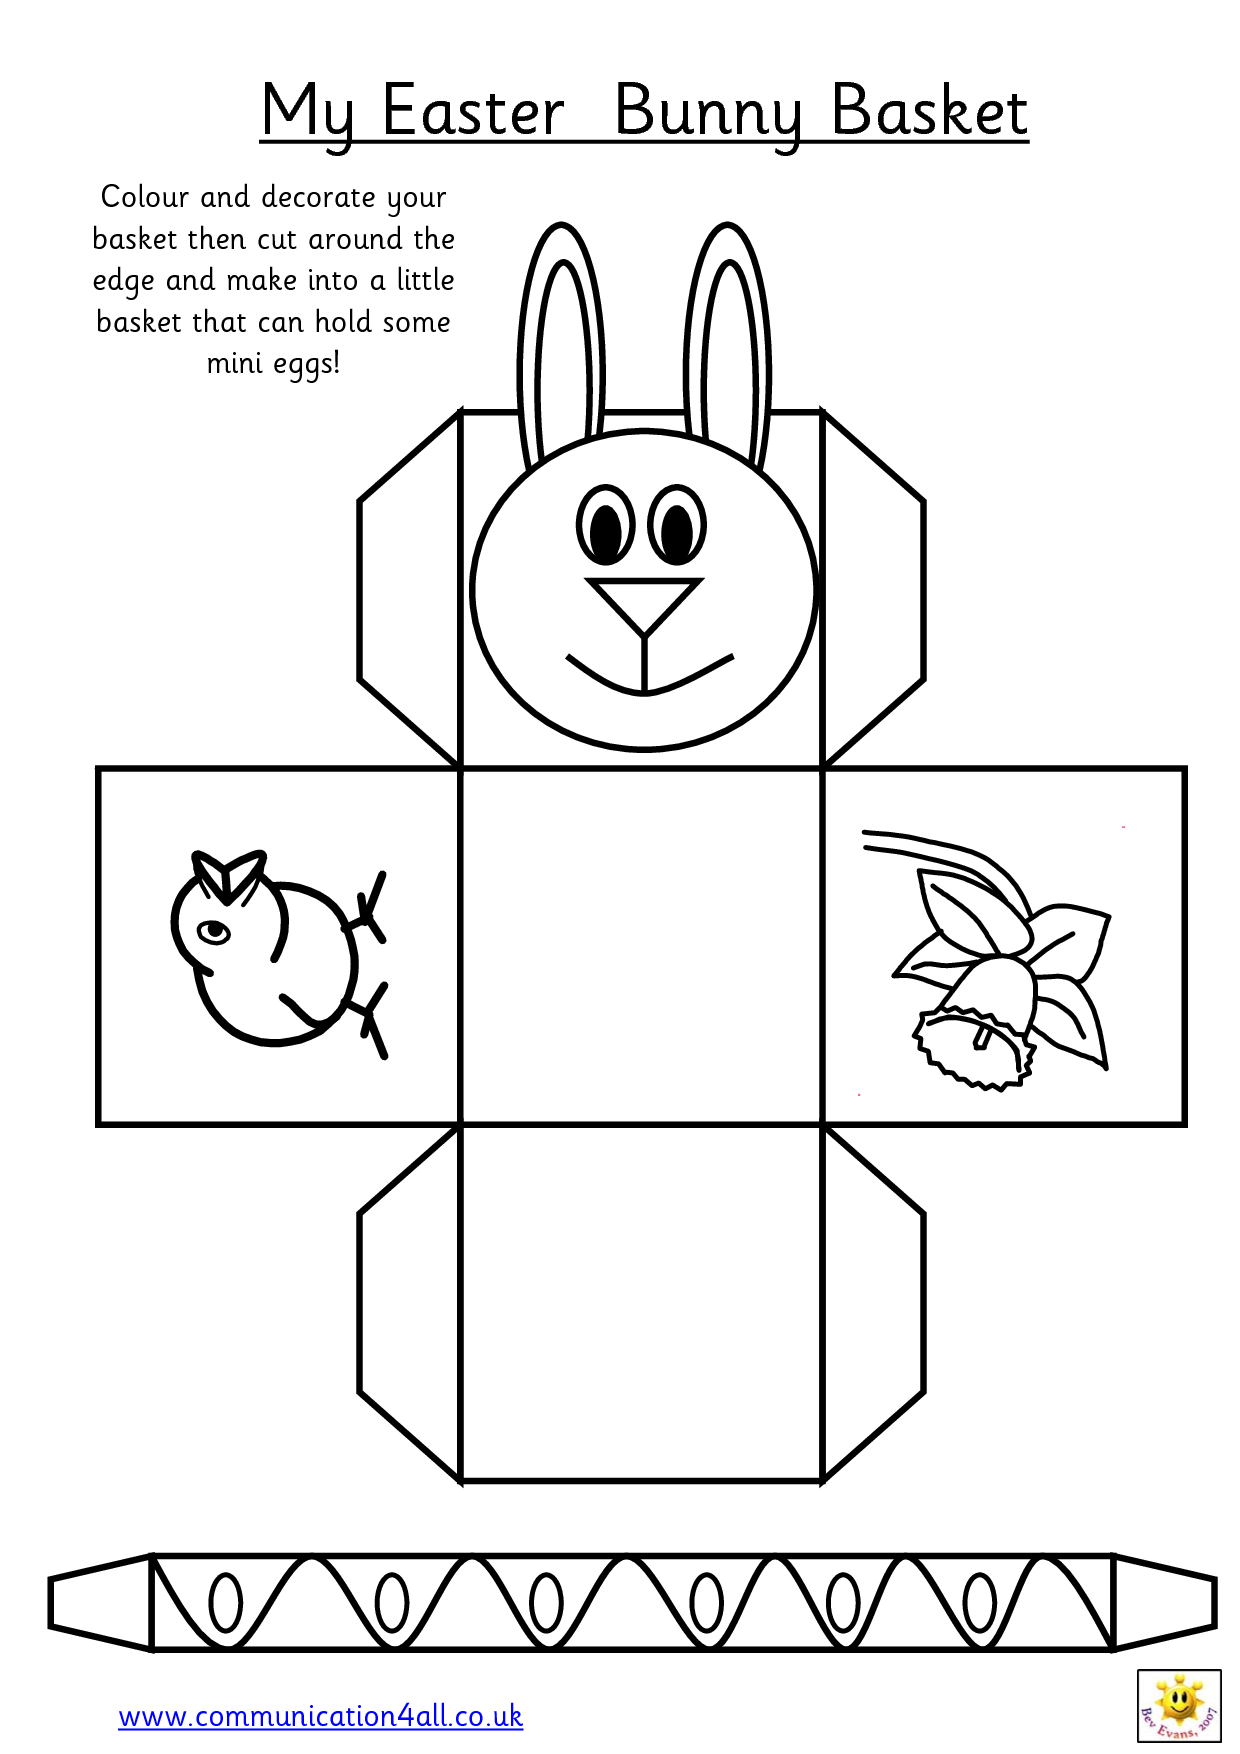 How To Draw A Rabbit For